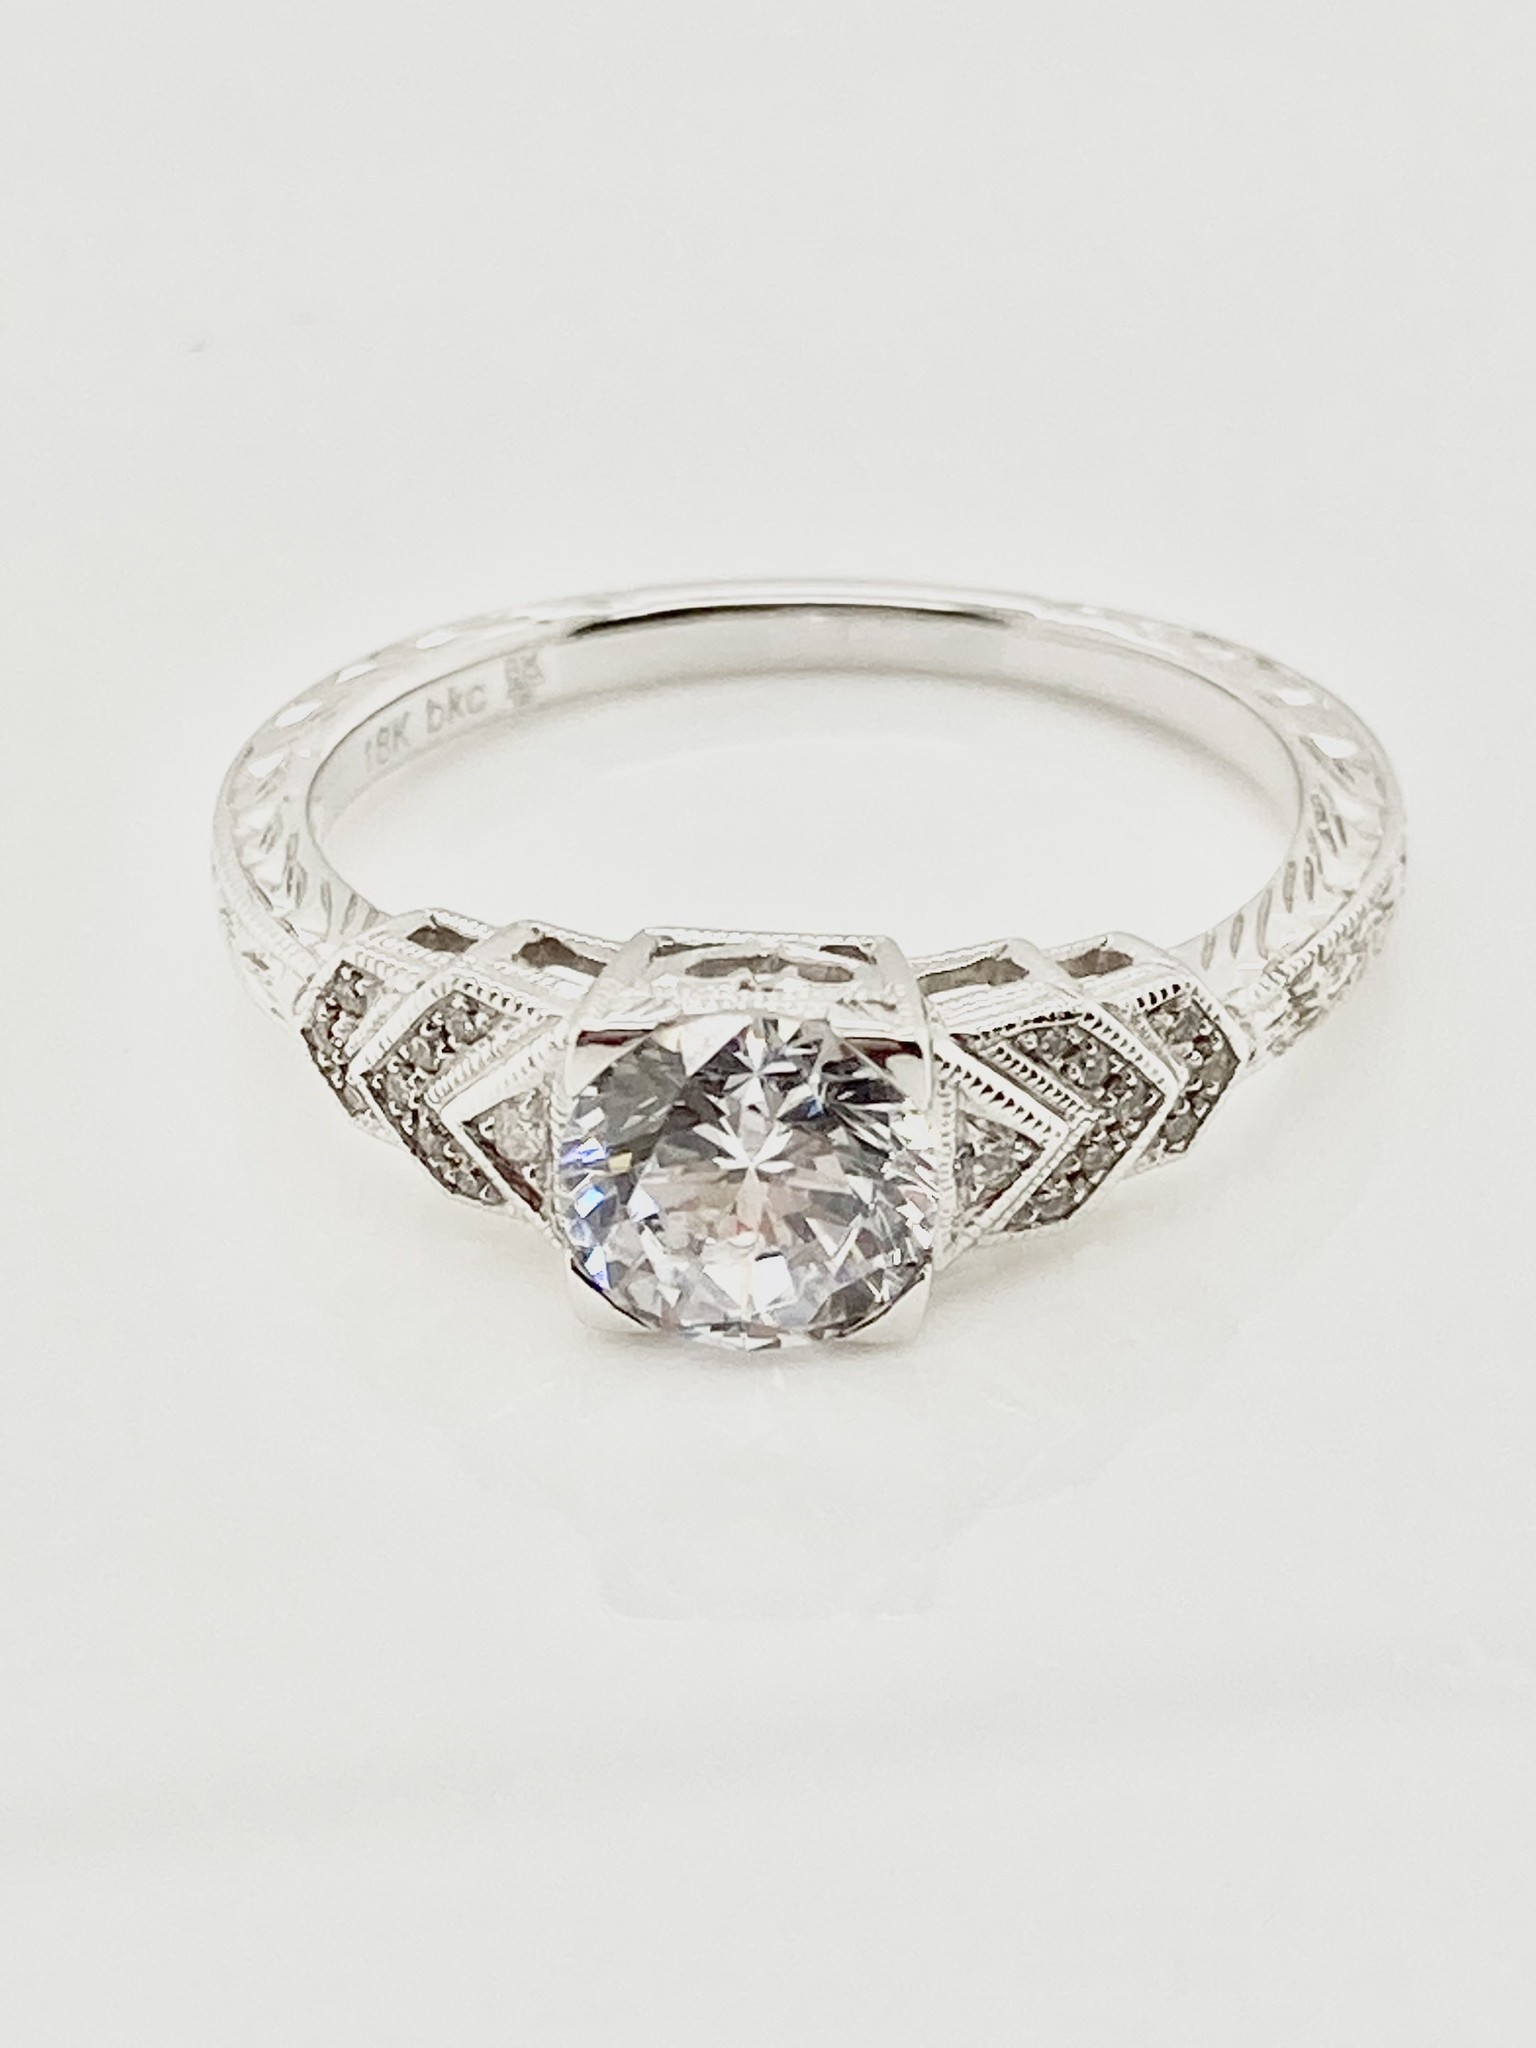 18kt White Gold Deco-style Shield Ring Setting